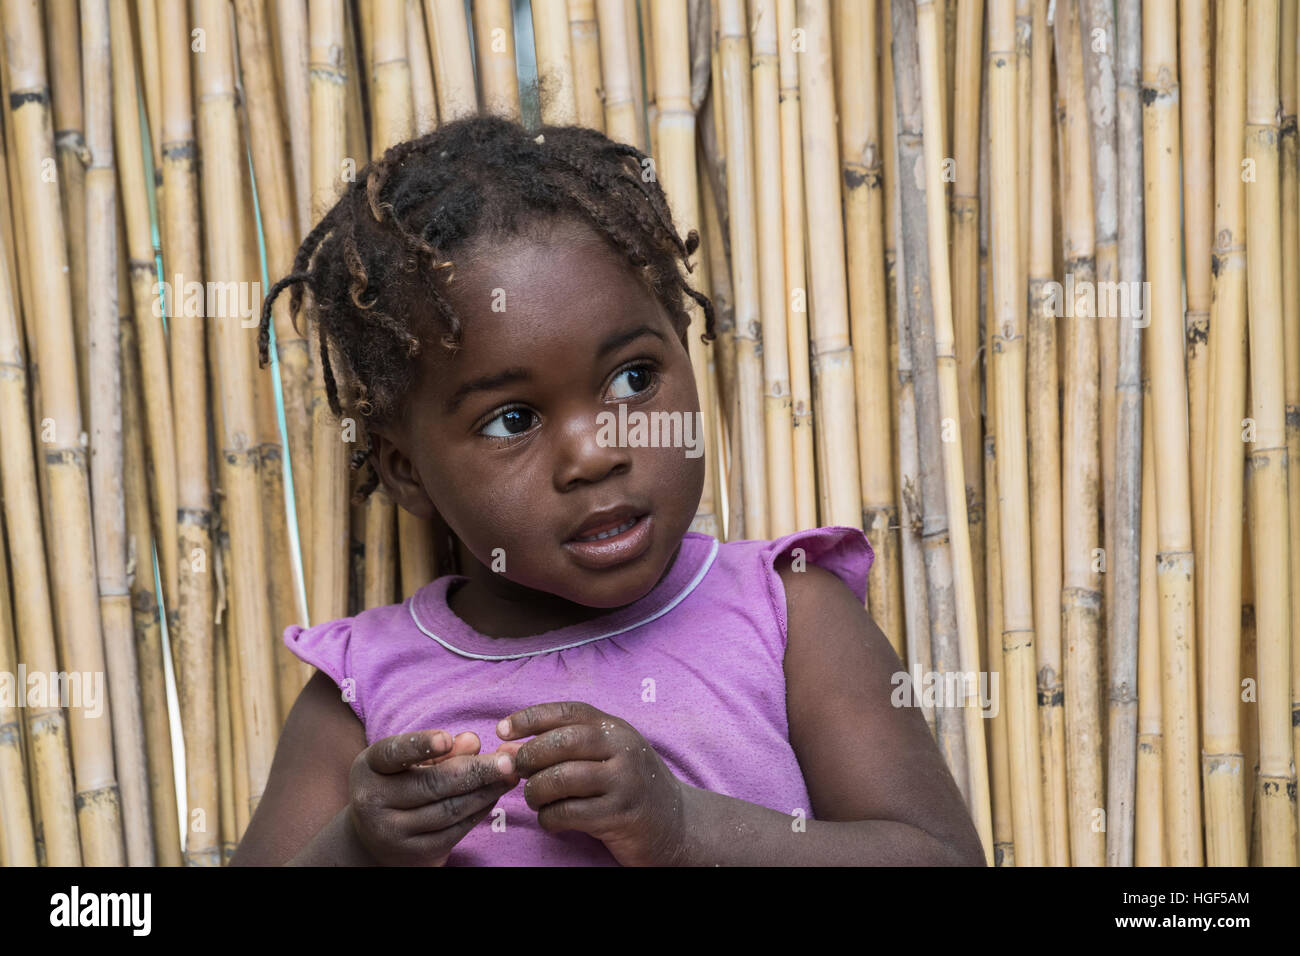 Young African girl with braids, Botswana, Namibia - Stock Image